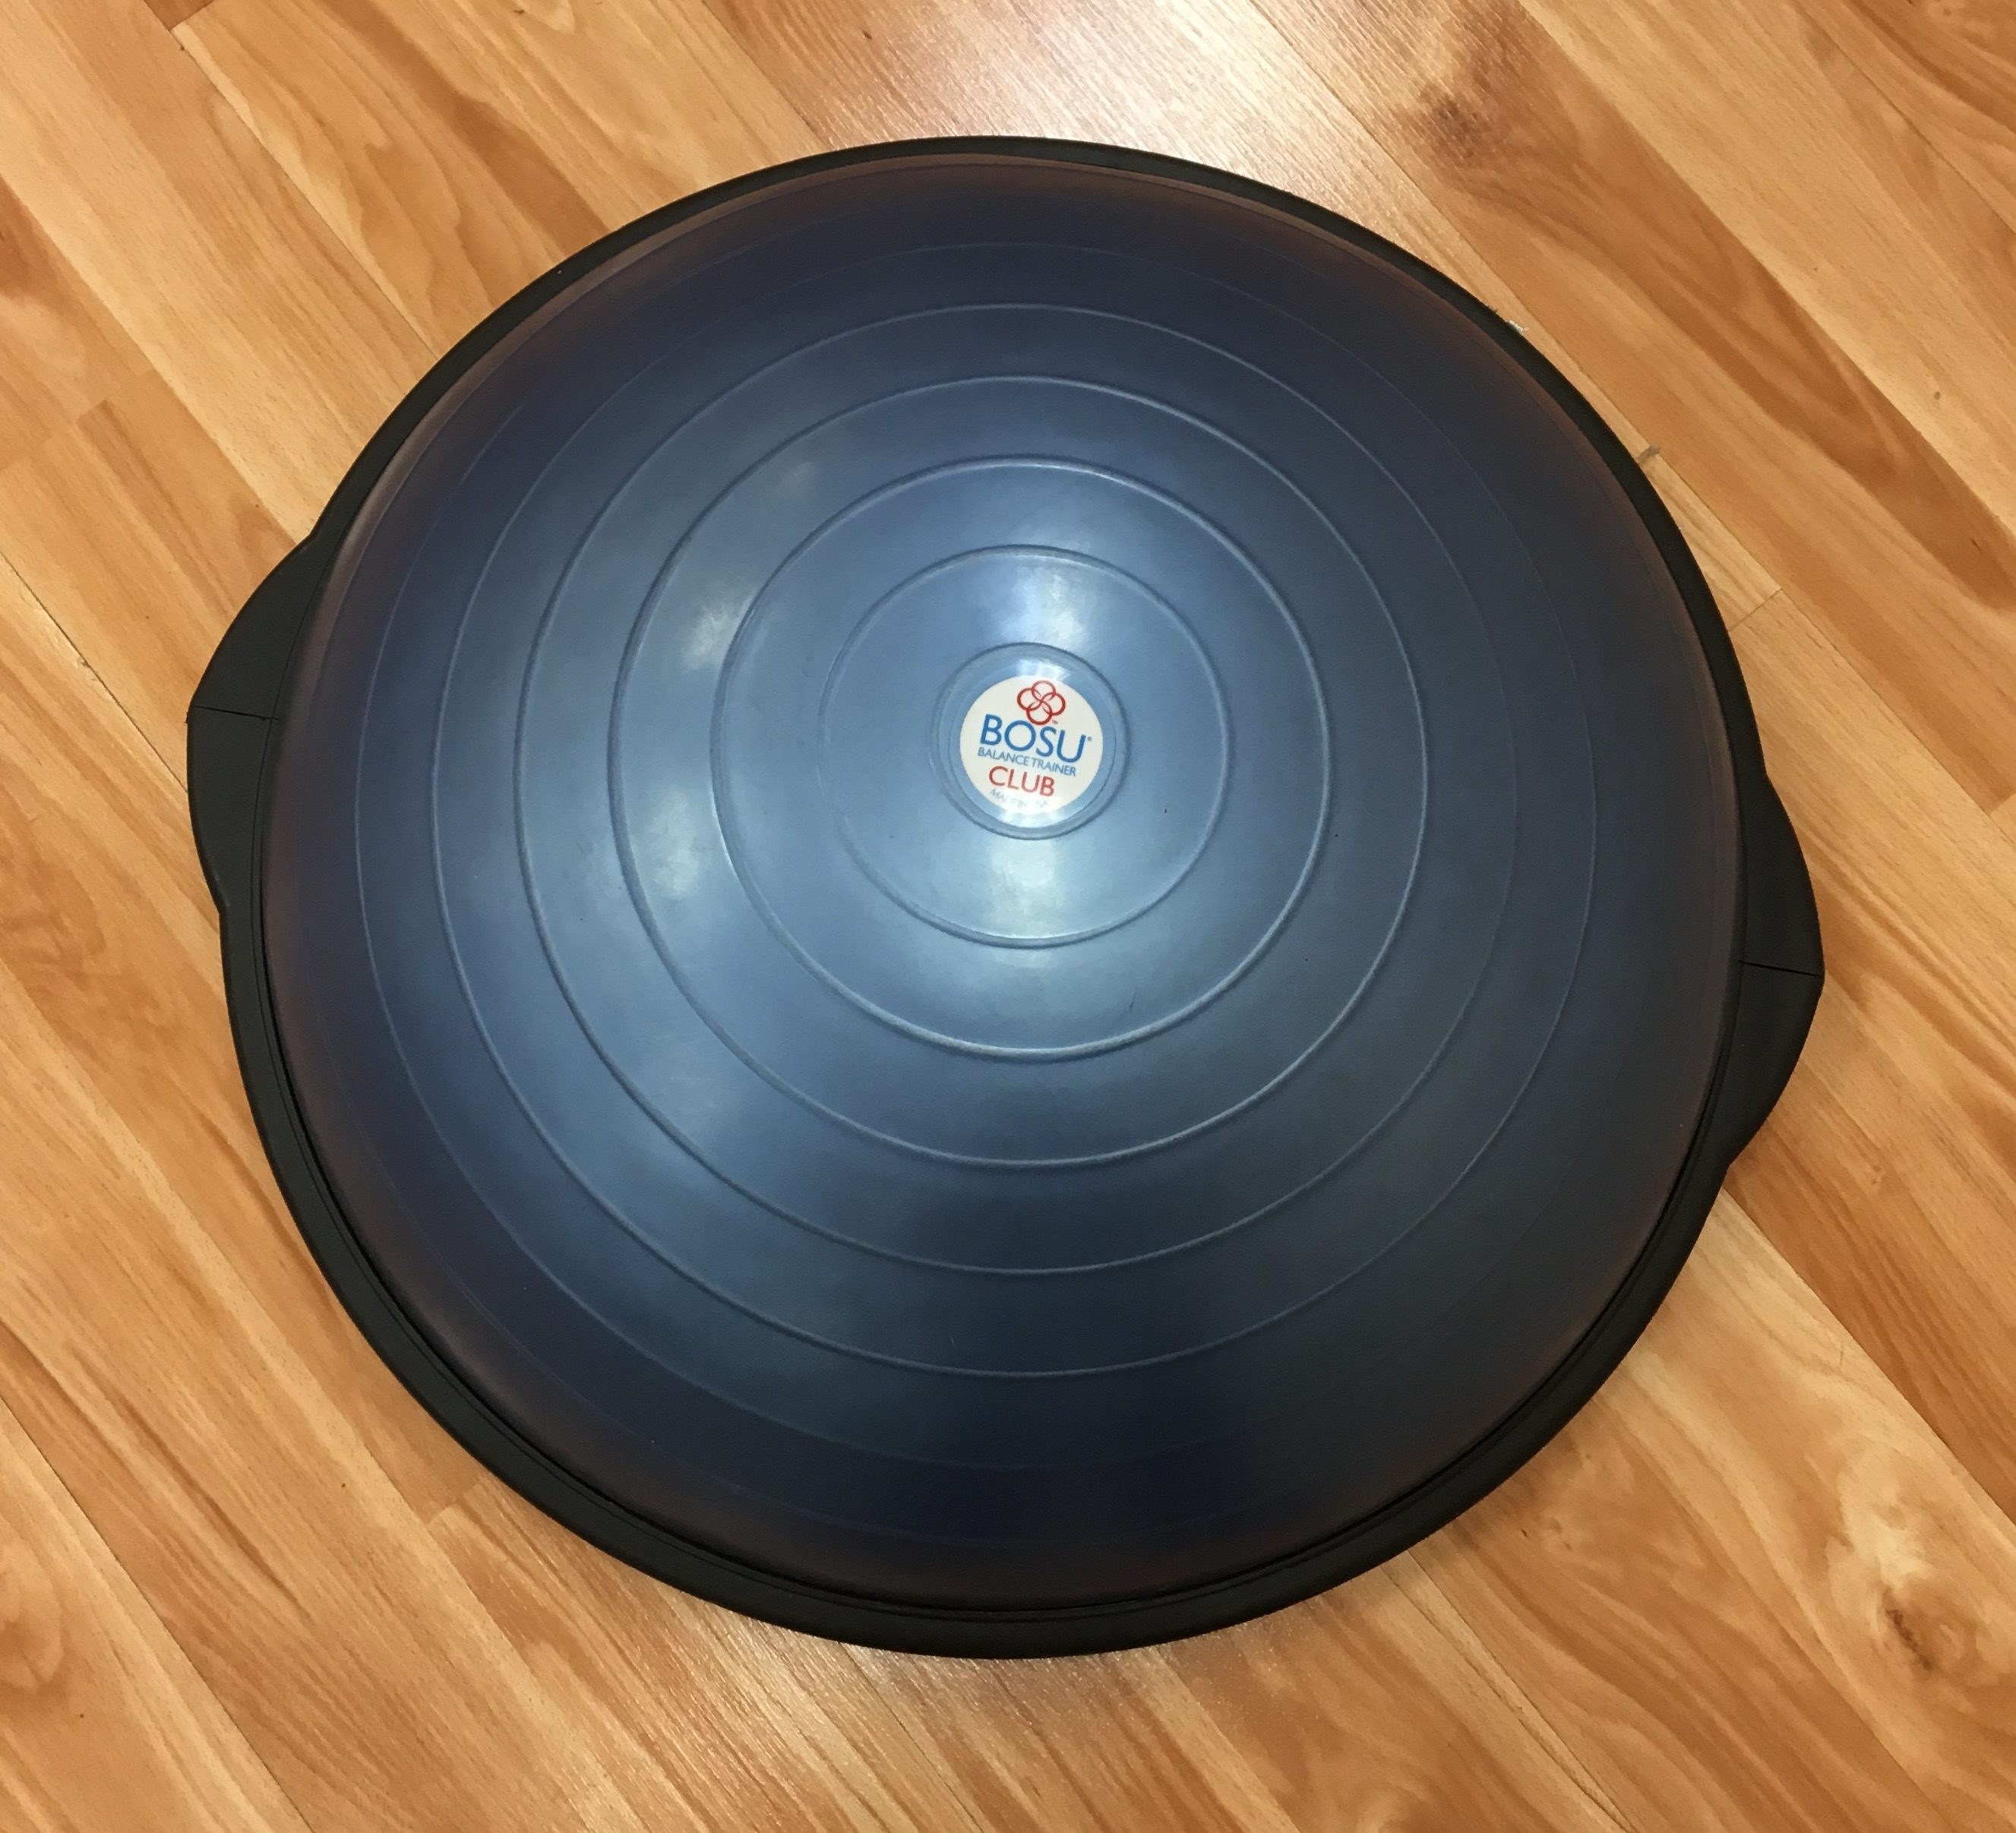 Bosu Ball Good Or Bad: What Is A BOSU Ball For? This.